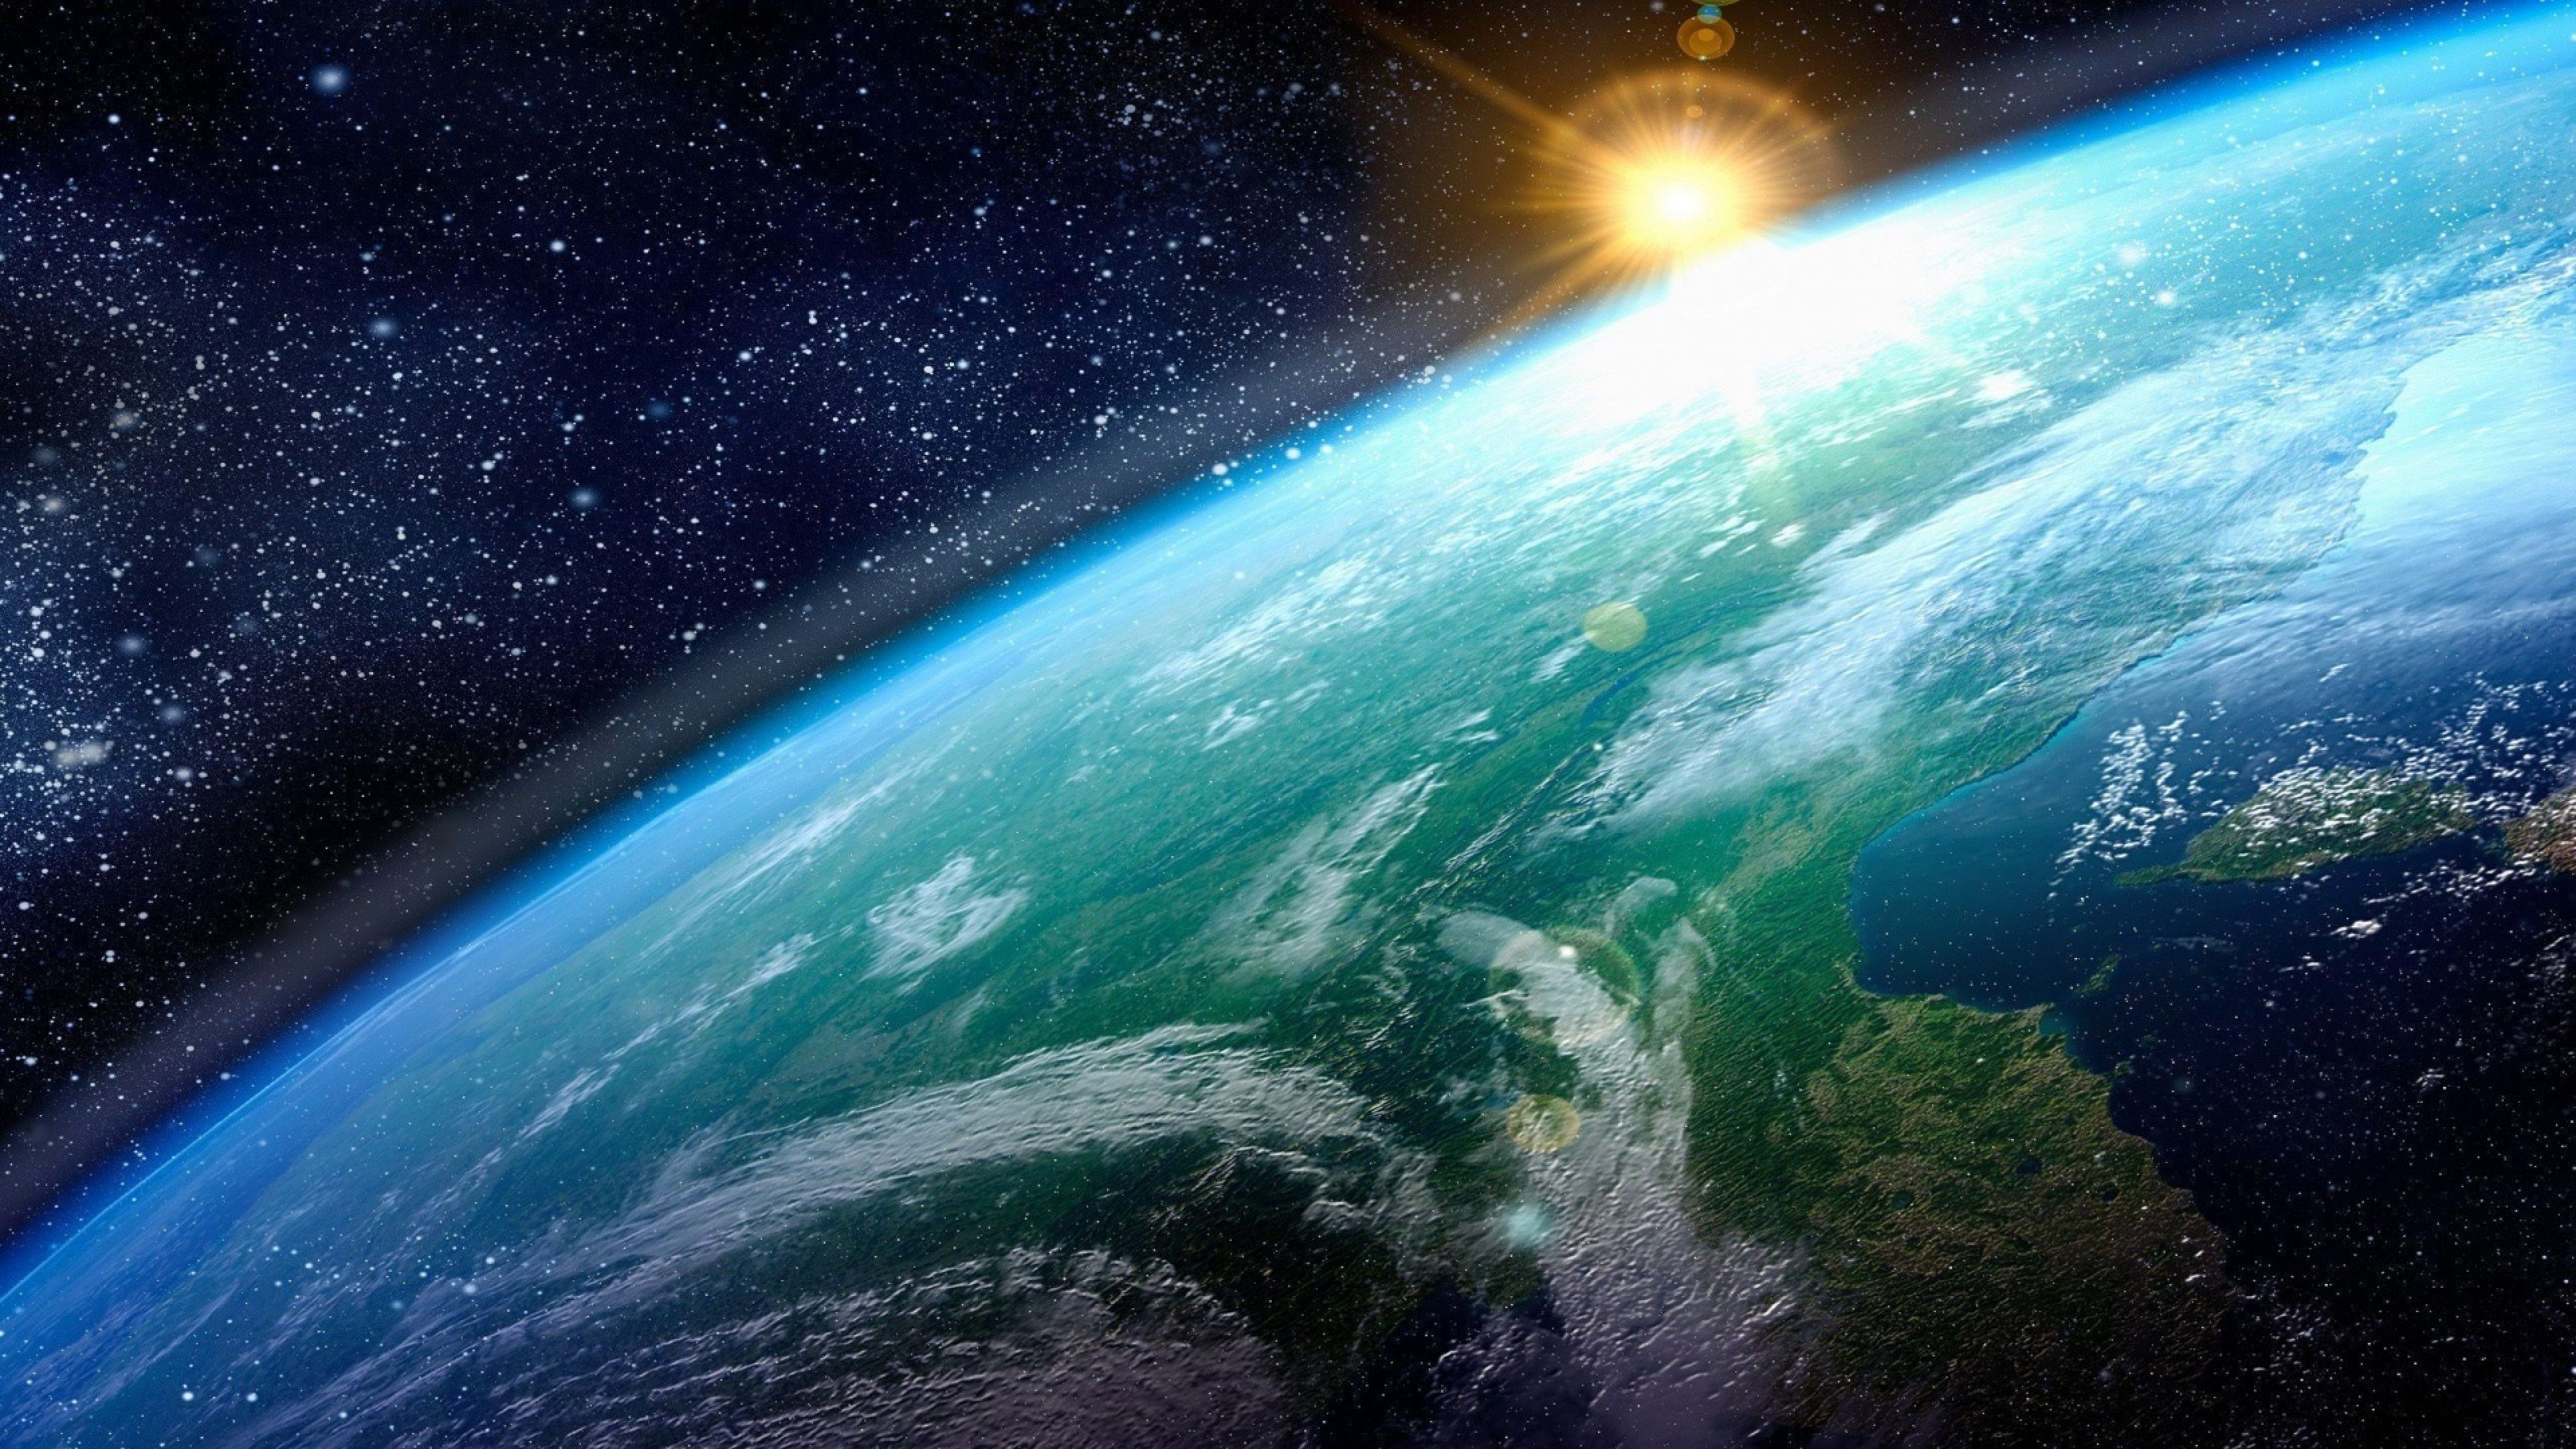 4K Ultra HD Earth Wallpapers HD, Desktop Backgrounds 3840x2160 ...